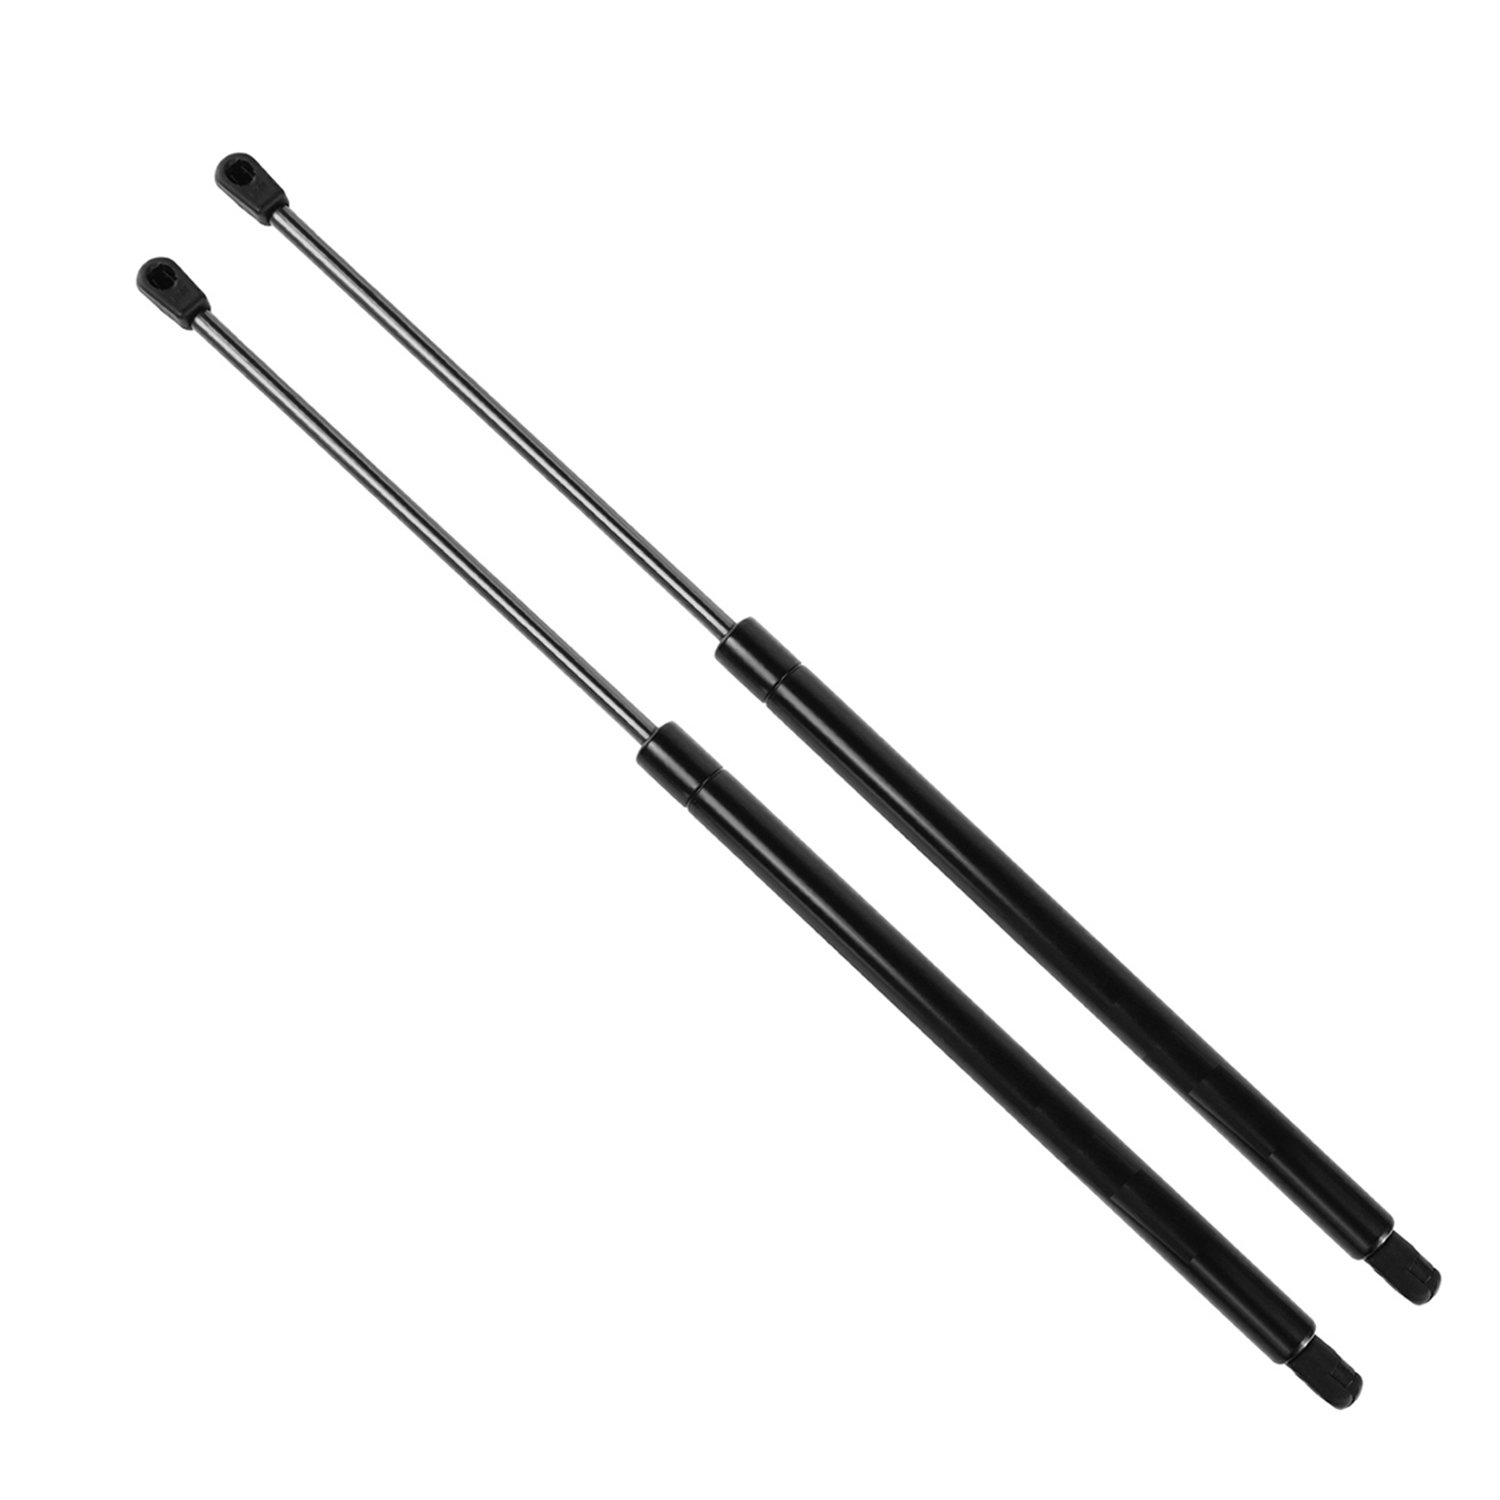 Rear Liftgate Tailgate Lift Supports Struts Shocks Gas Spings 6262 for 2002-2006 Cadillac Escalade,2000-2004 GMC Yukon,2000-2004 Chevrolet Suburban Tahoe SG230064,10389051,Pack of 2